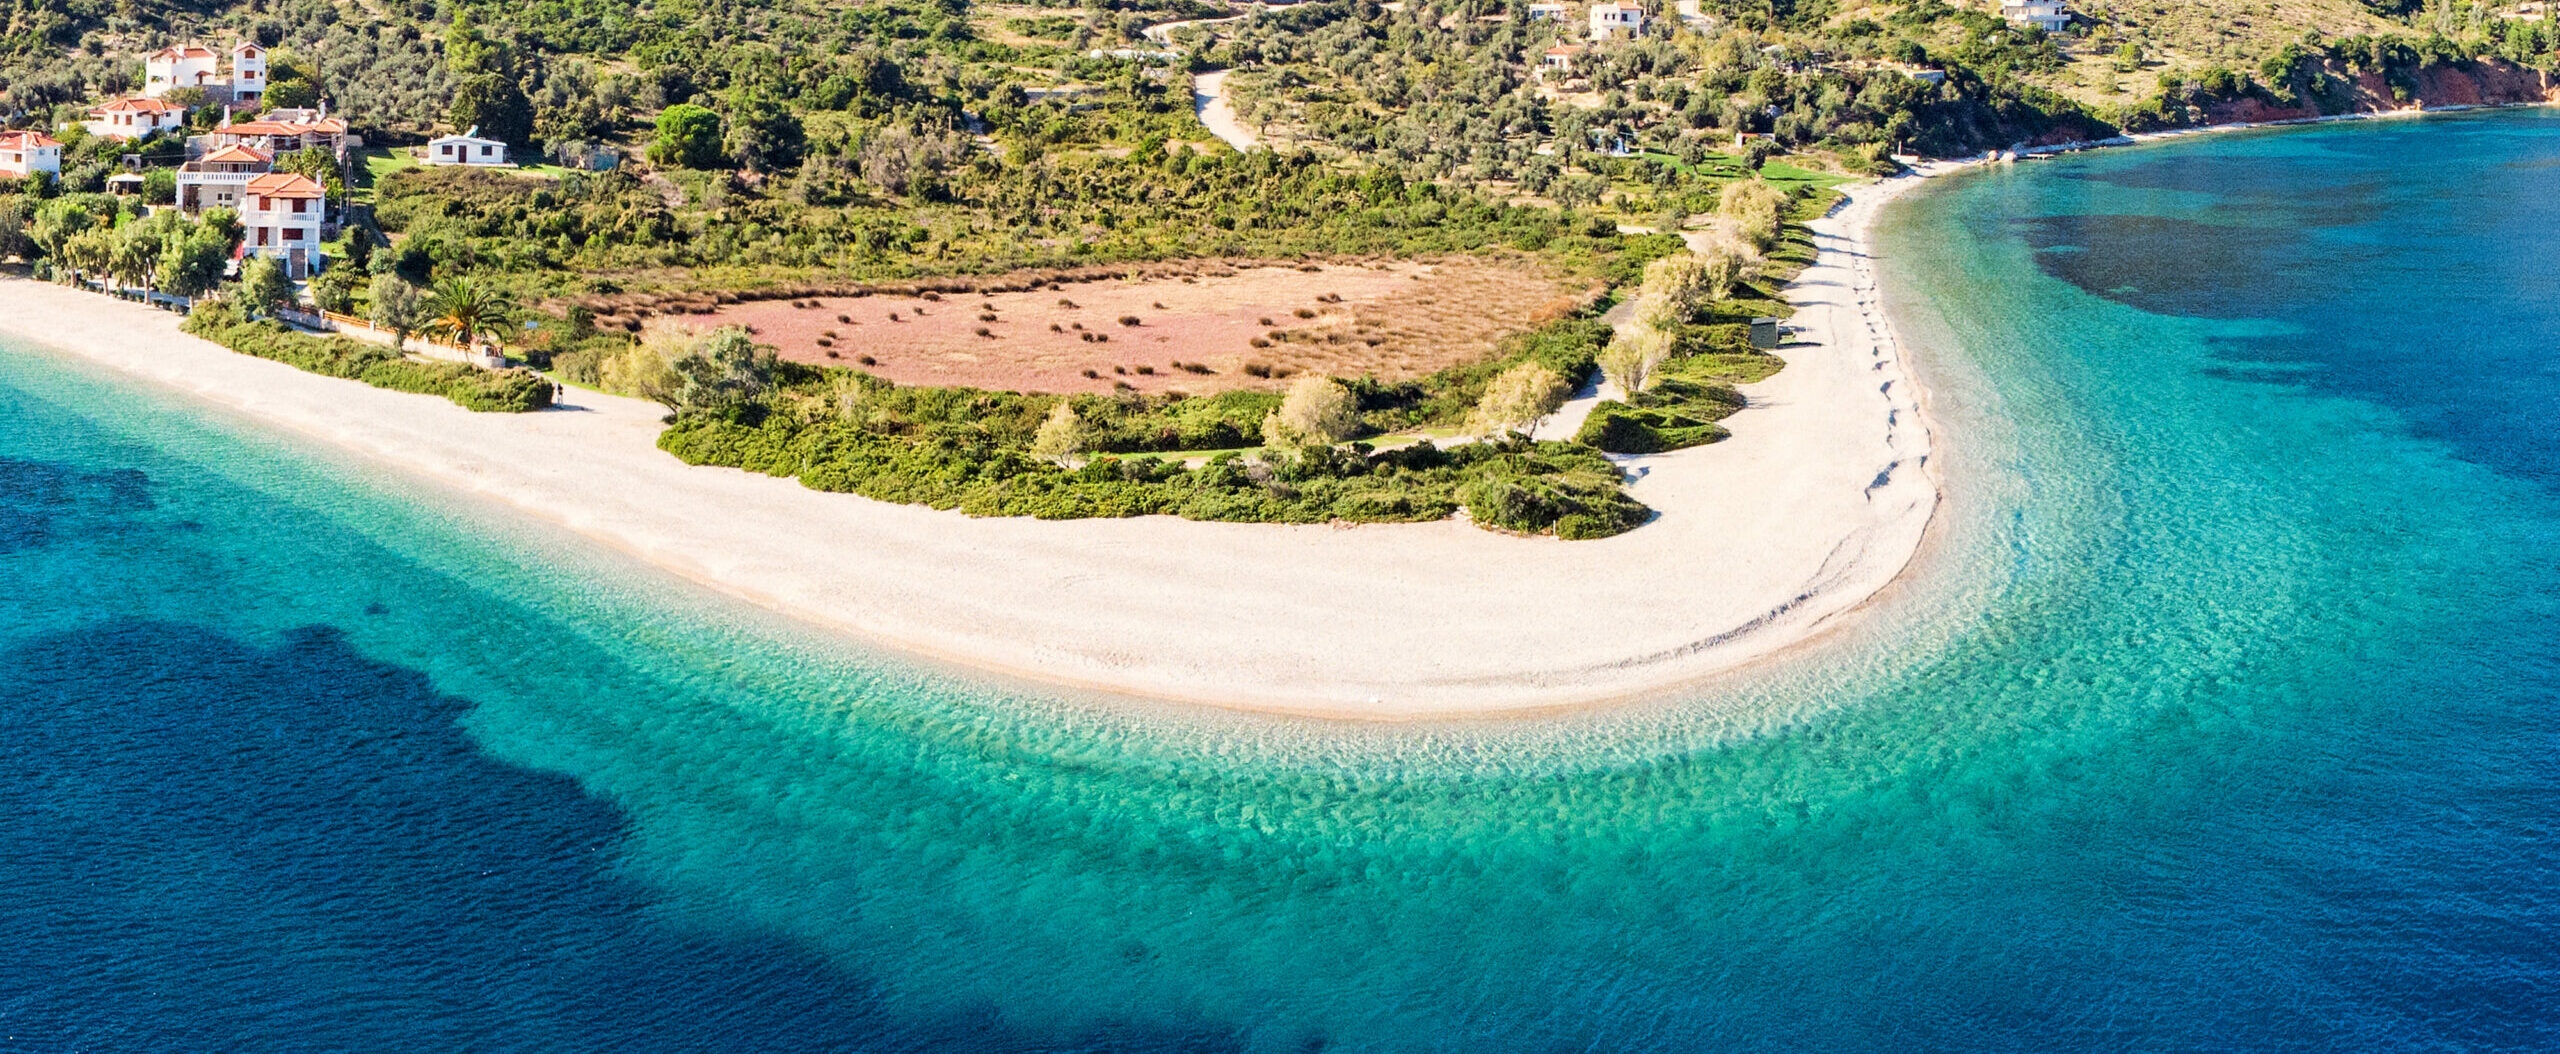 An ideally remote, exotic beach on Alonnisos